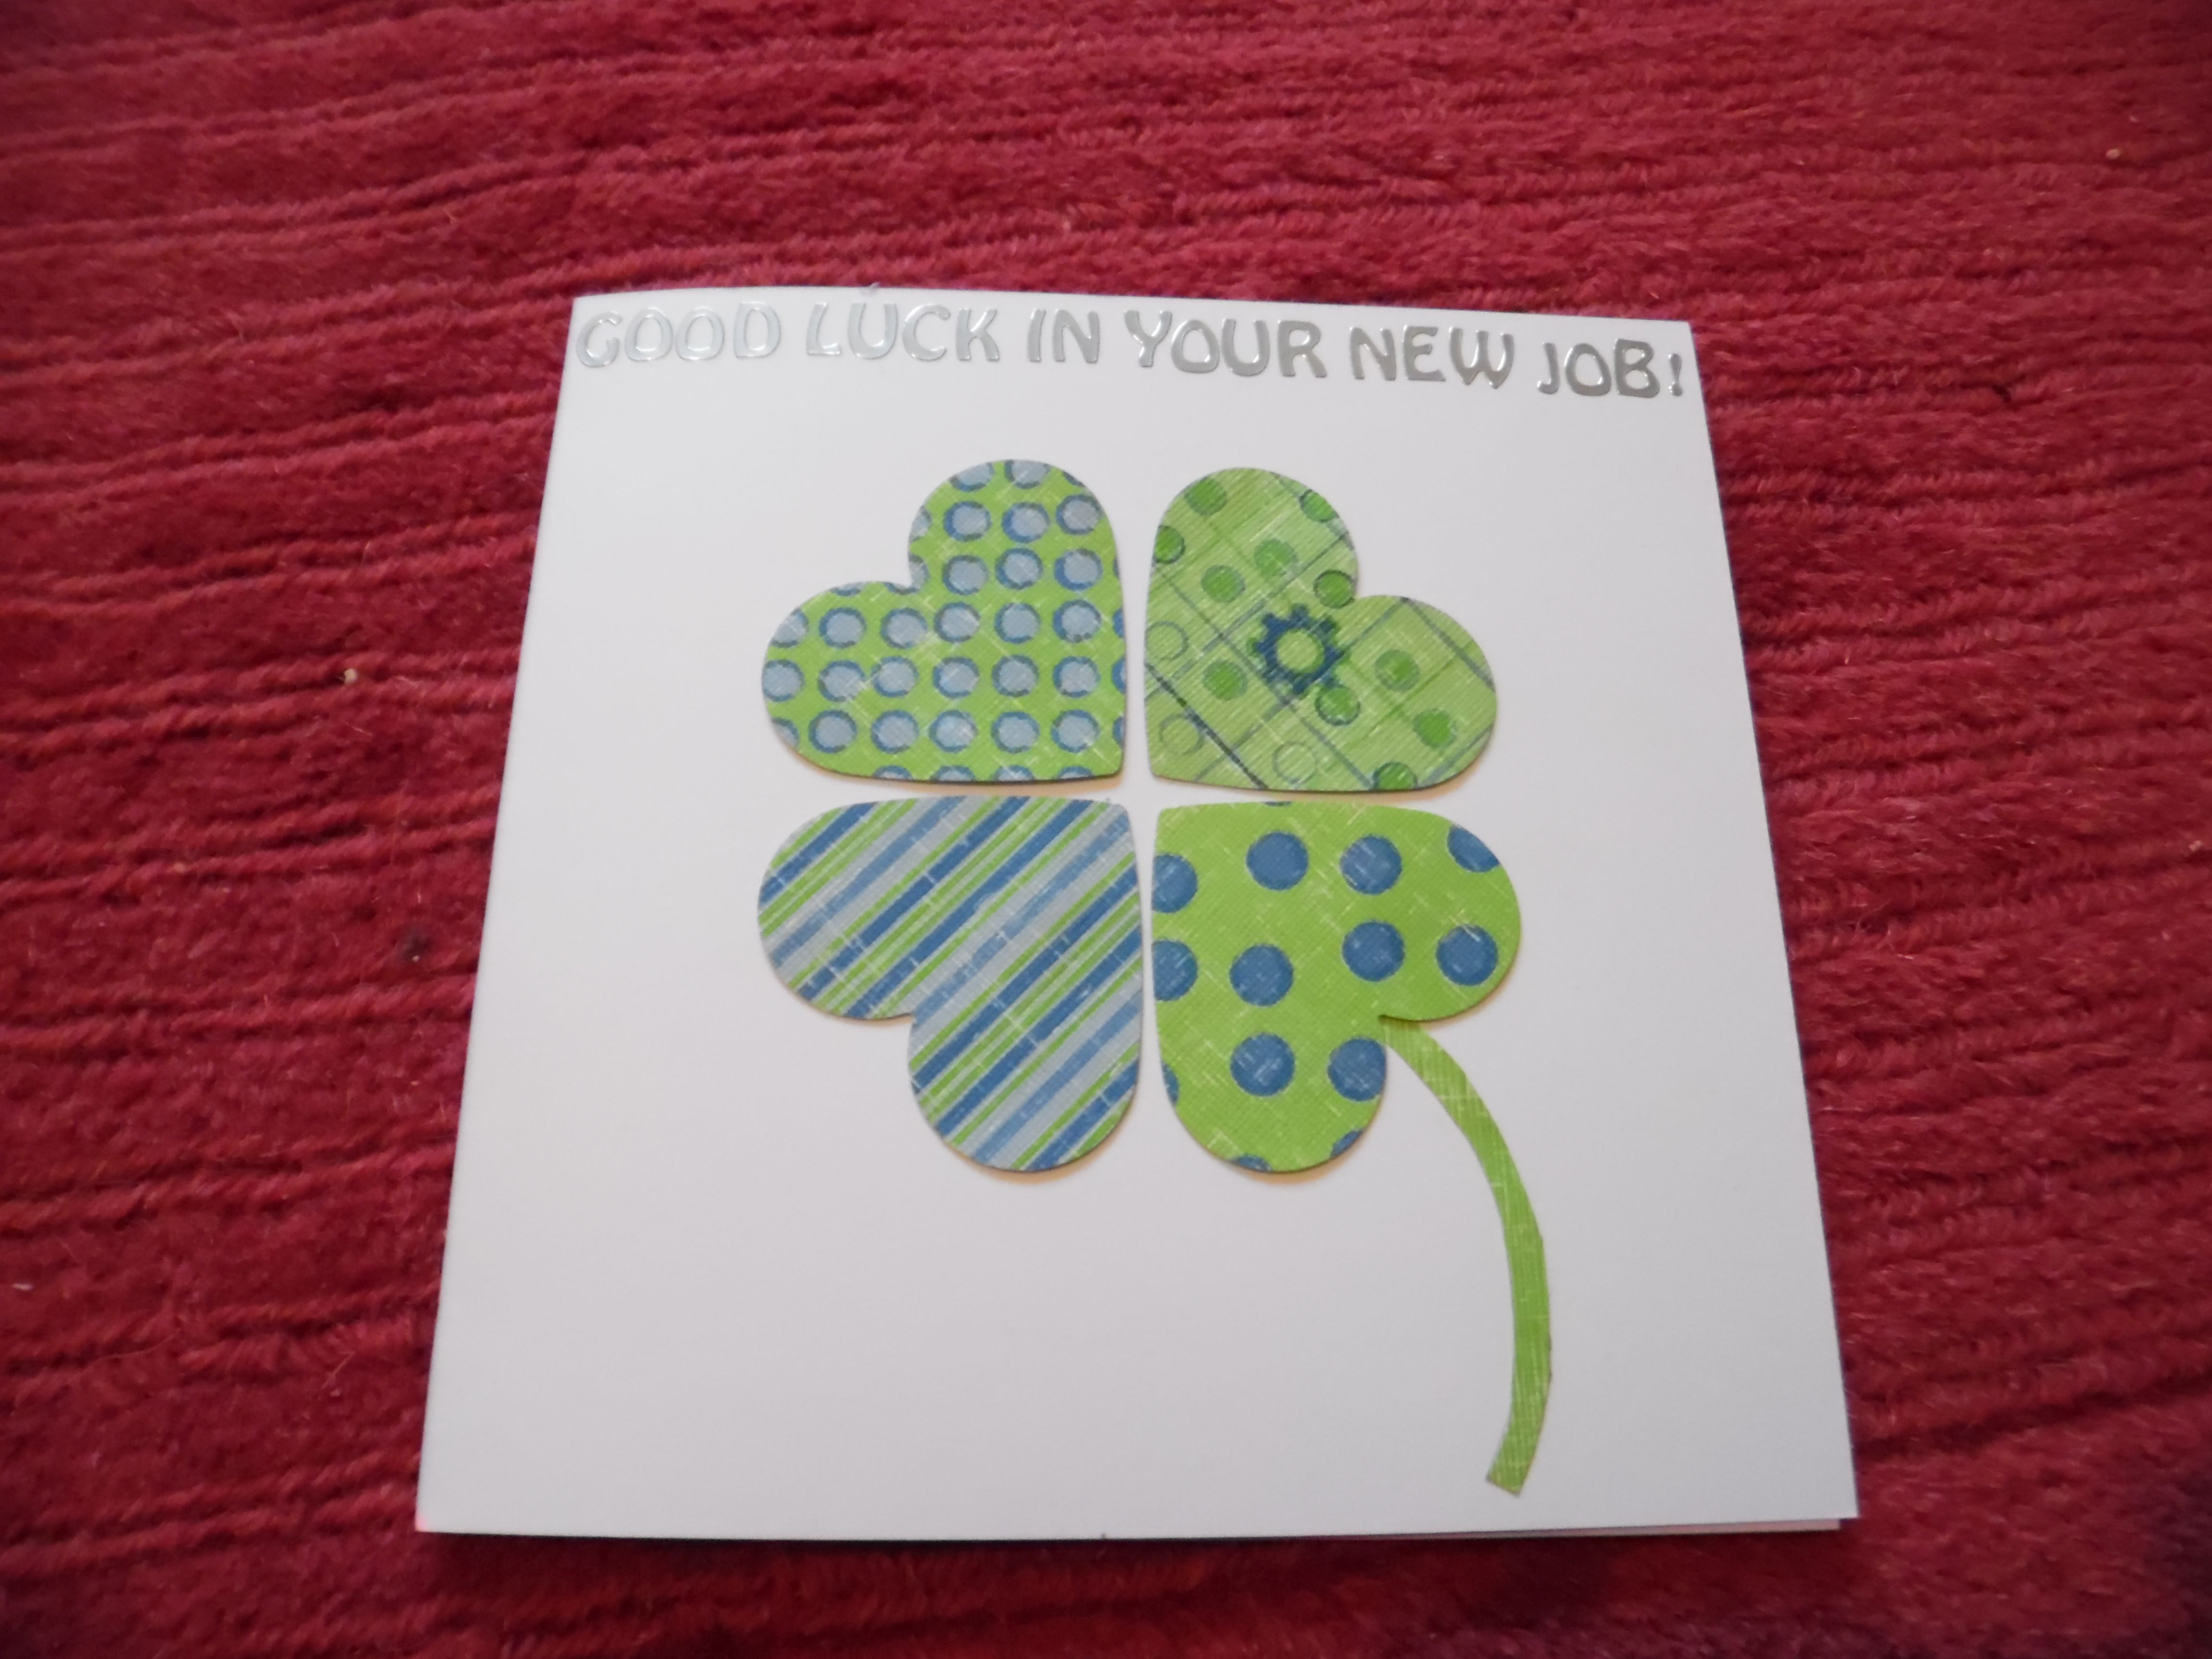 good luck in your new job card homemade cards i have made good luck in your new job card homemade